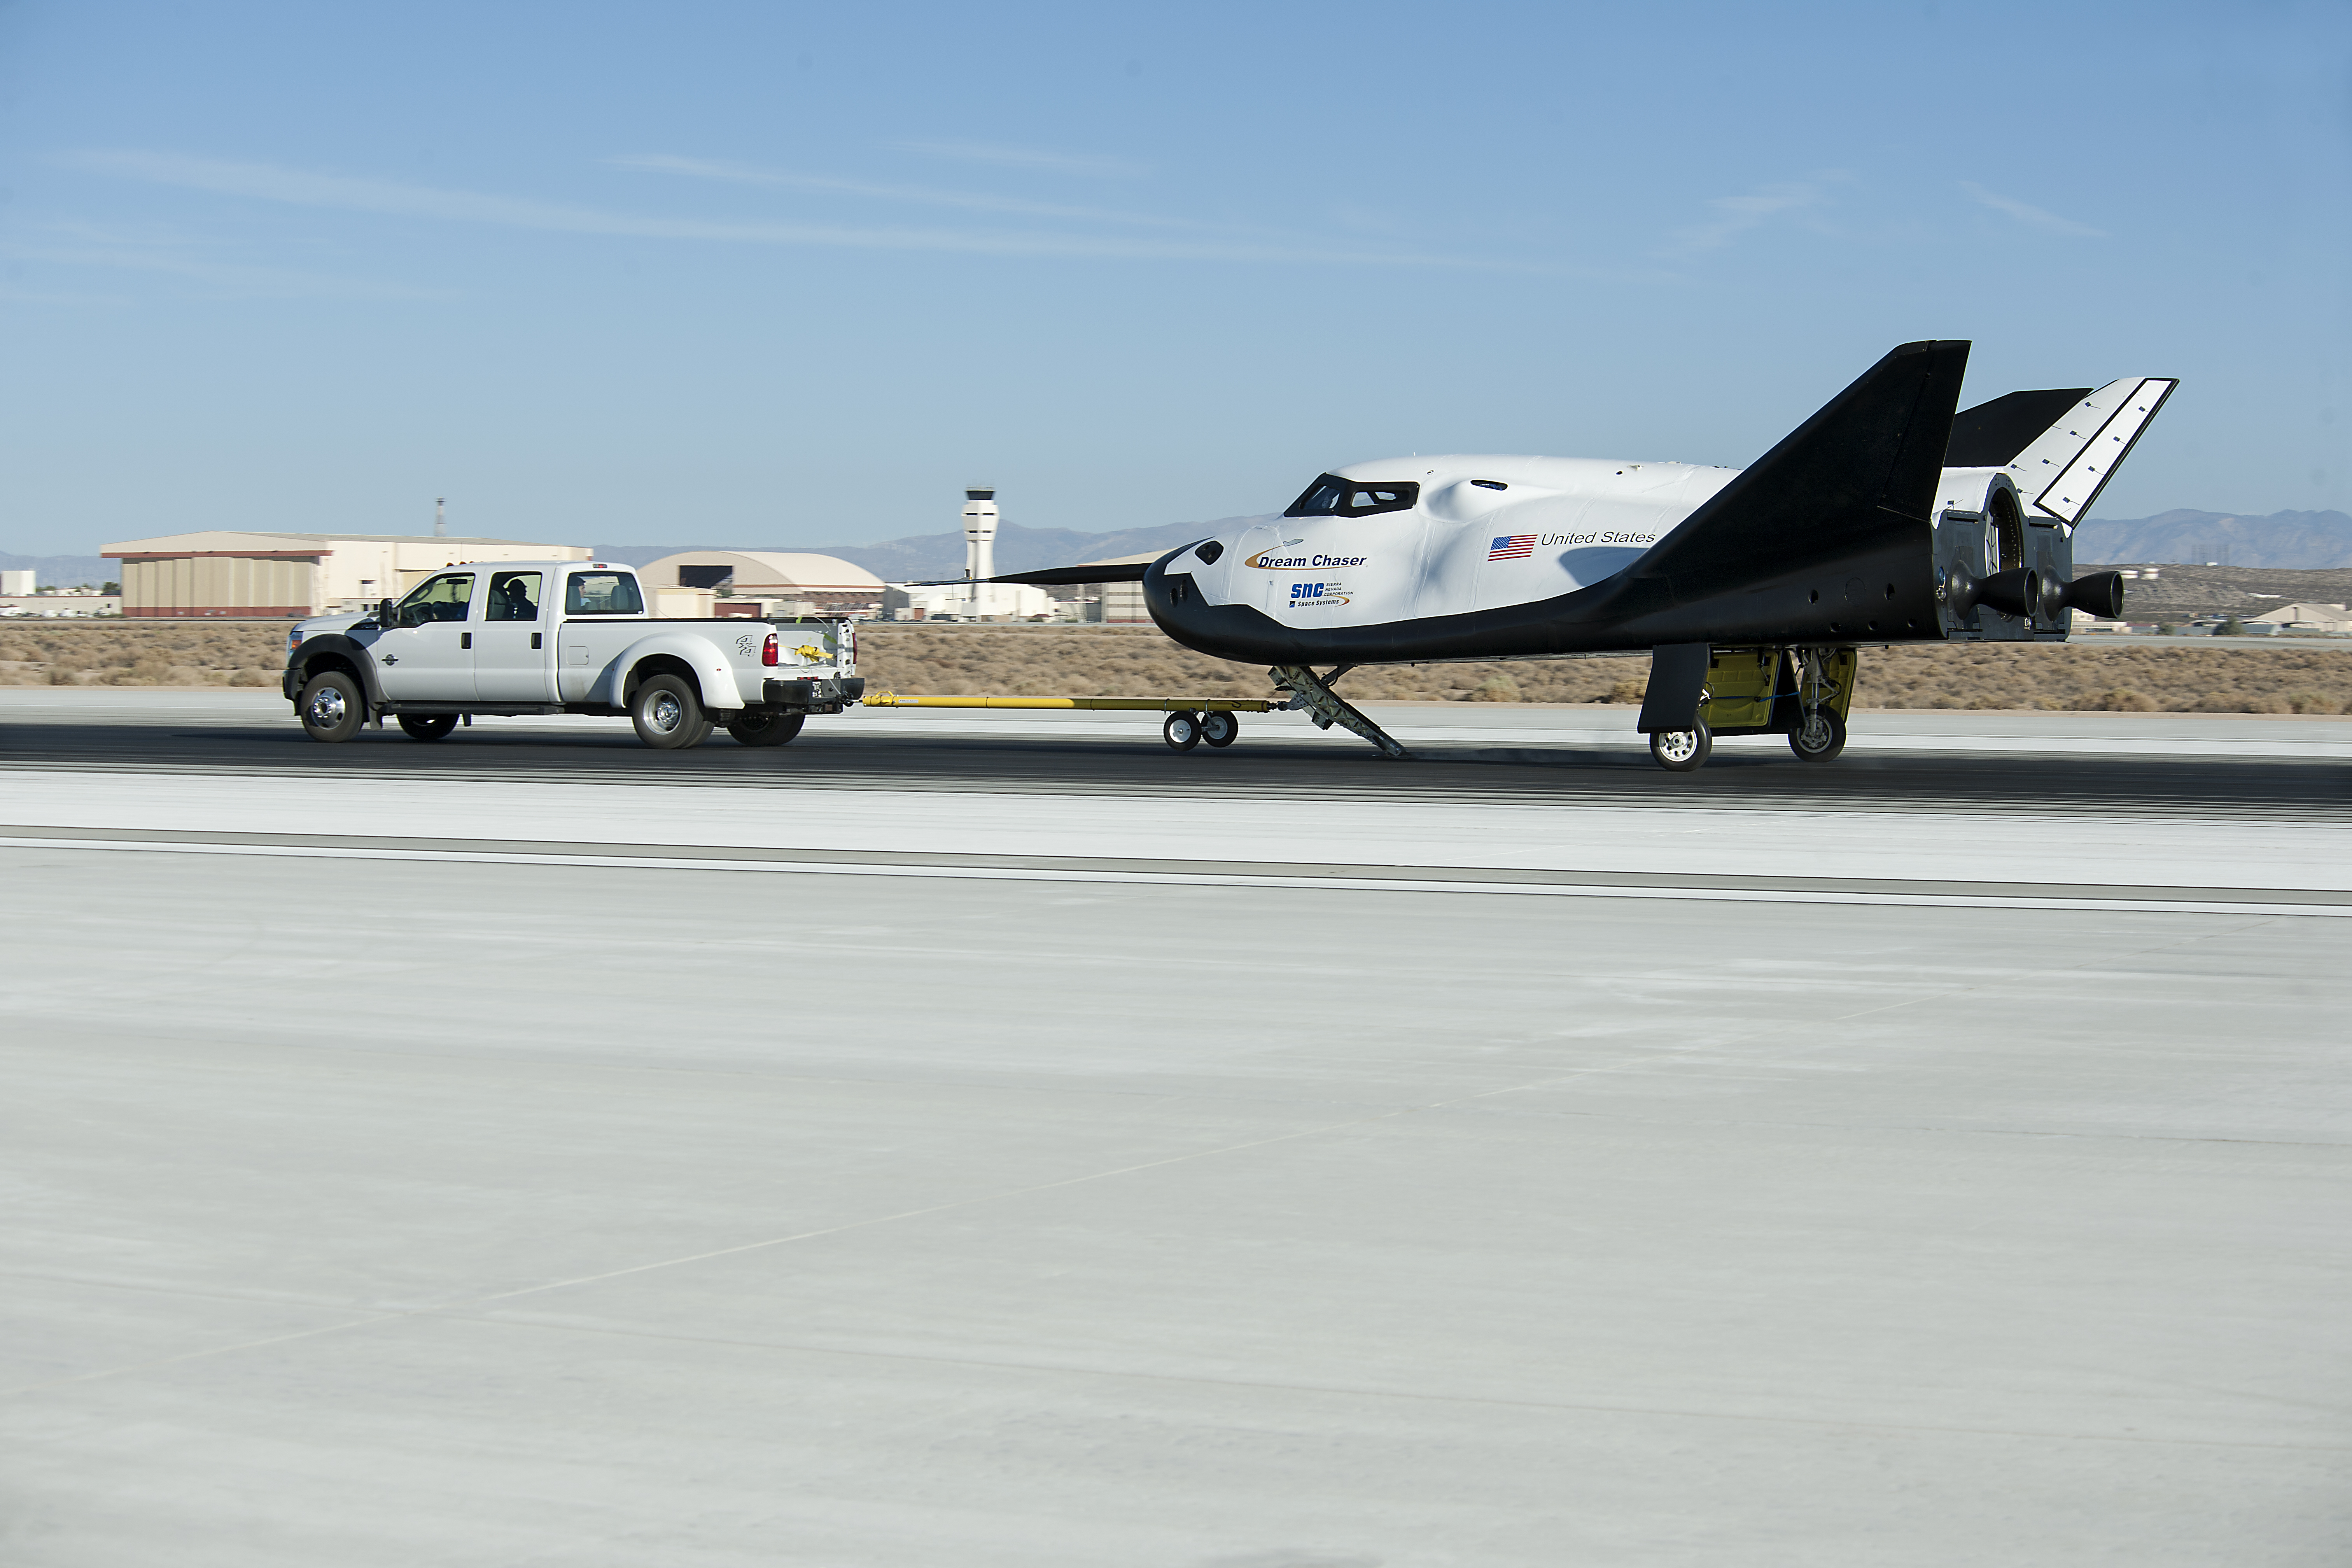 Dream Chaser Pulled in Tow Testing